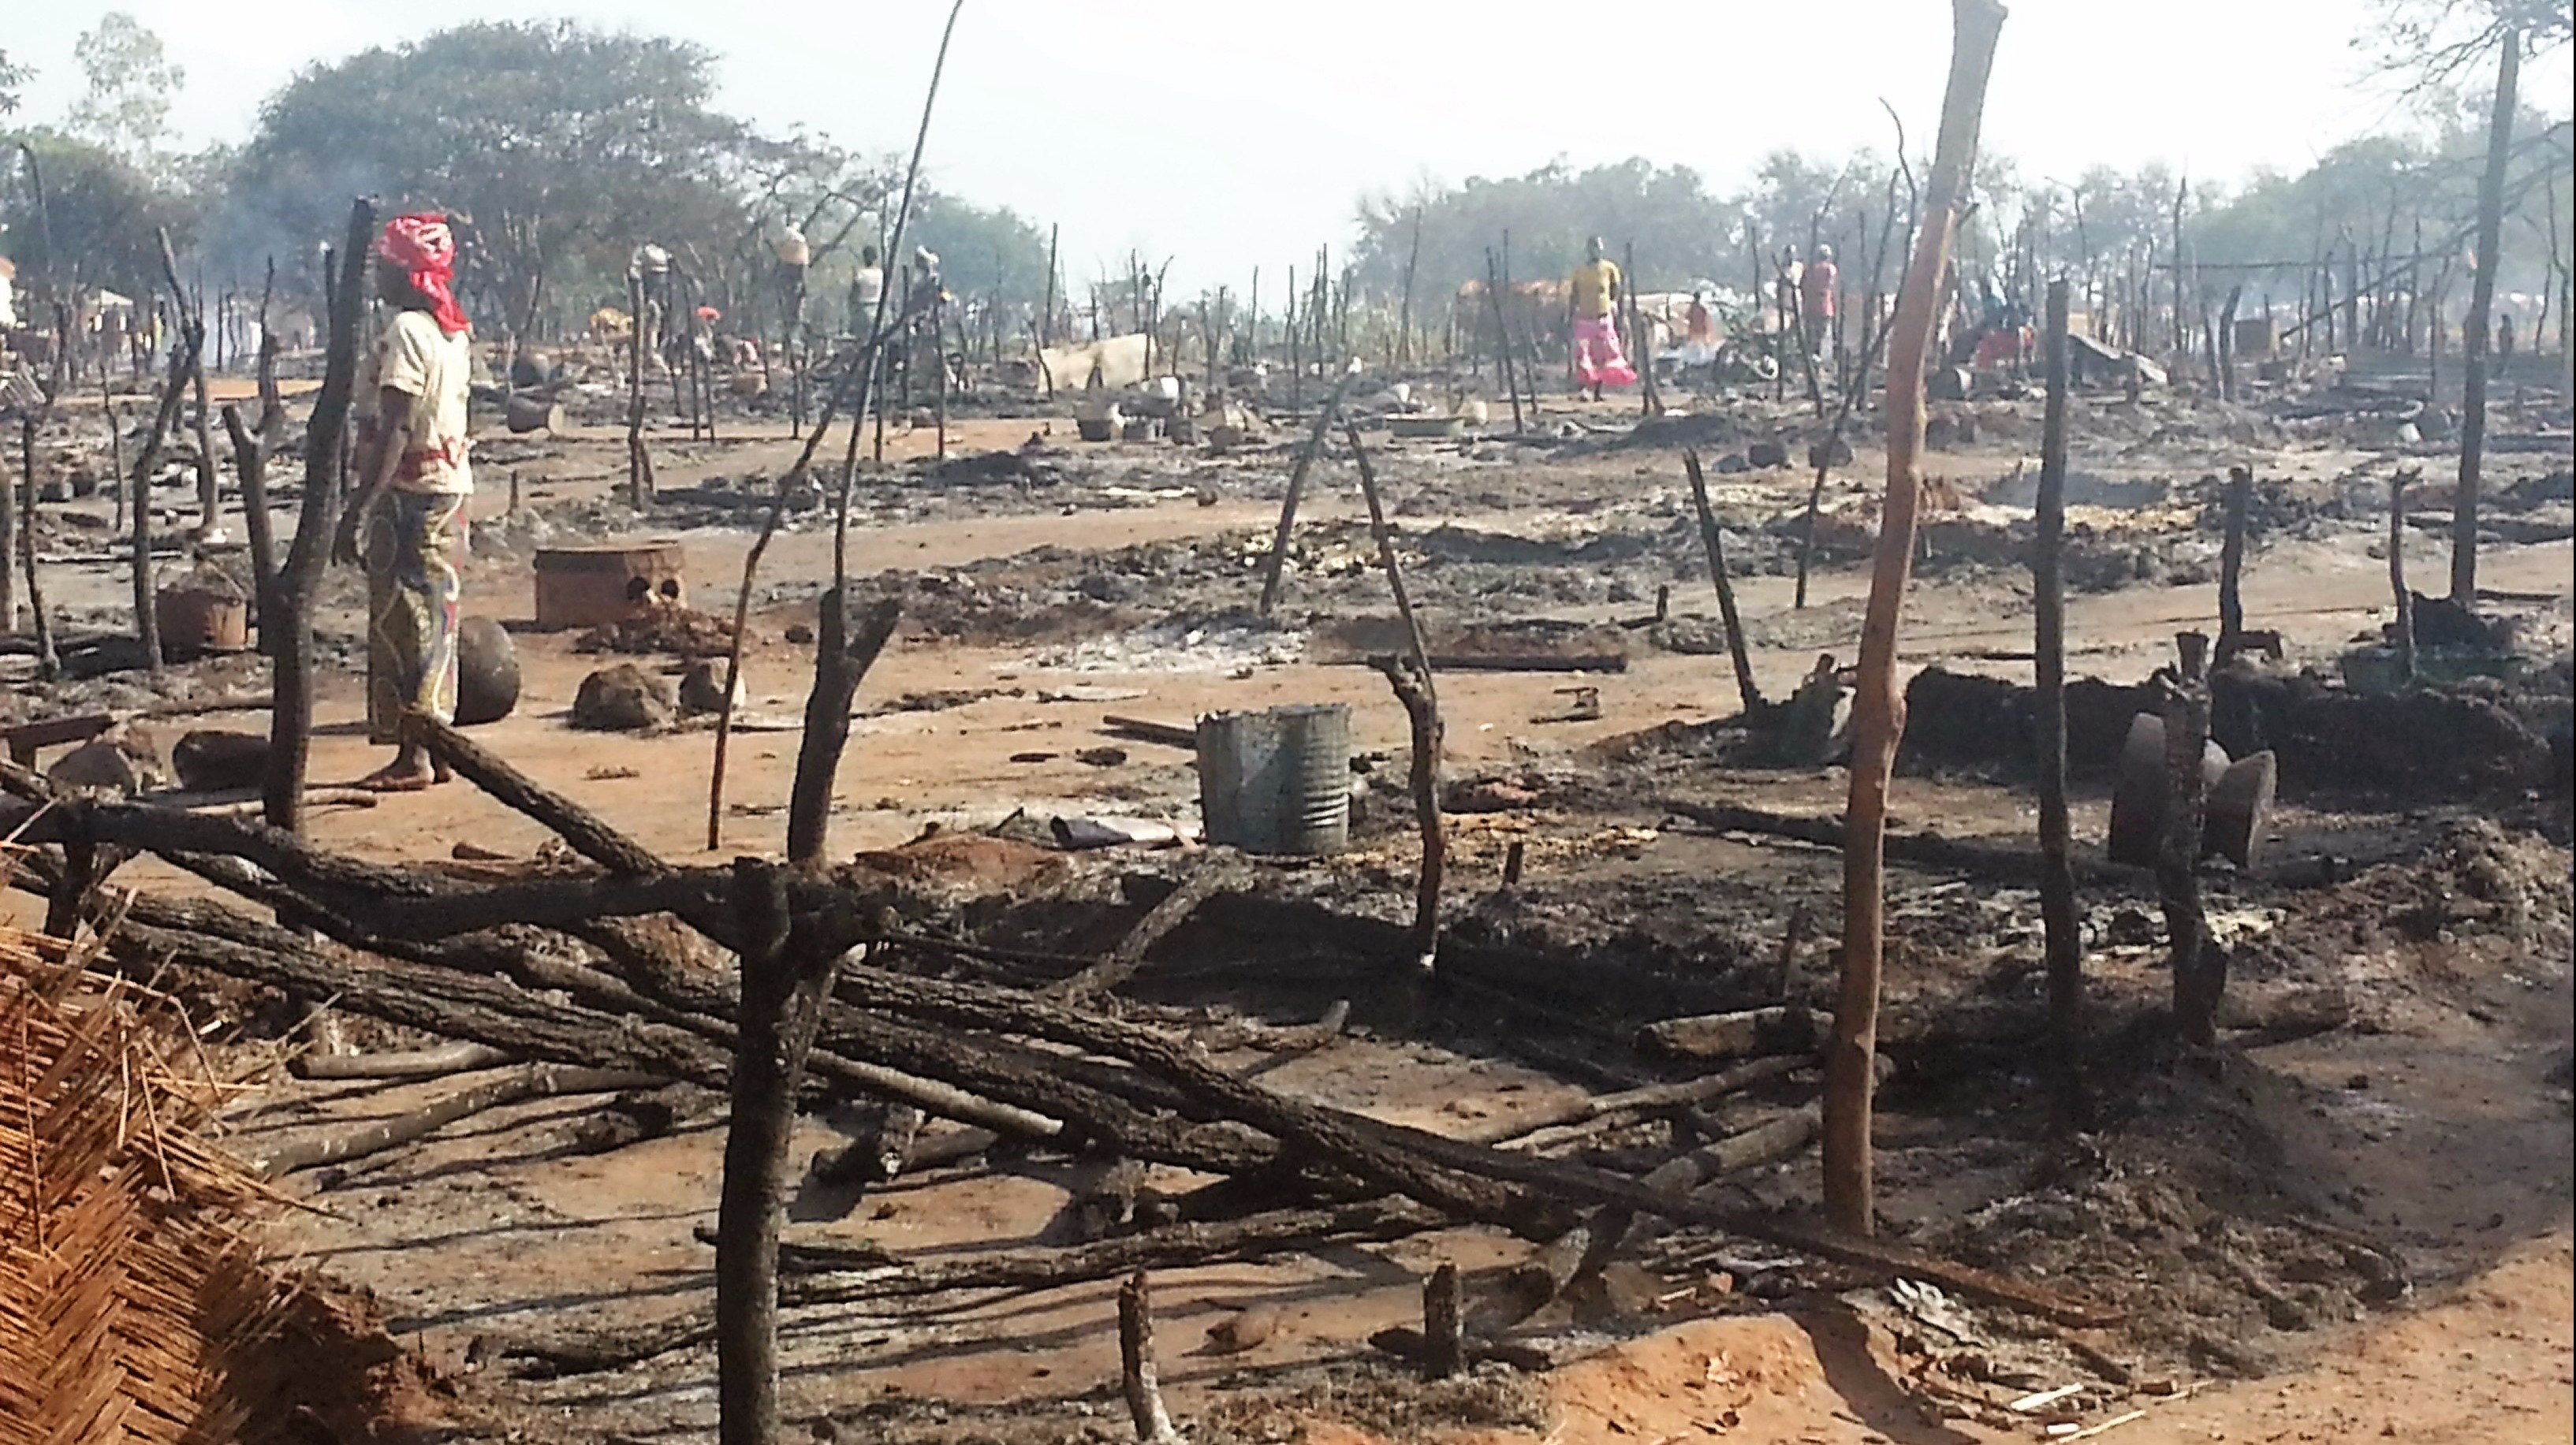 The site of a camp for internally displaced people in Batangafo, Central African Republic, the day after it was burned to the ground on 10 November 2015